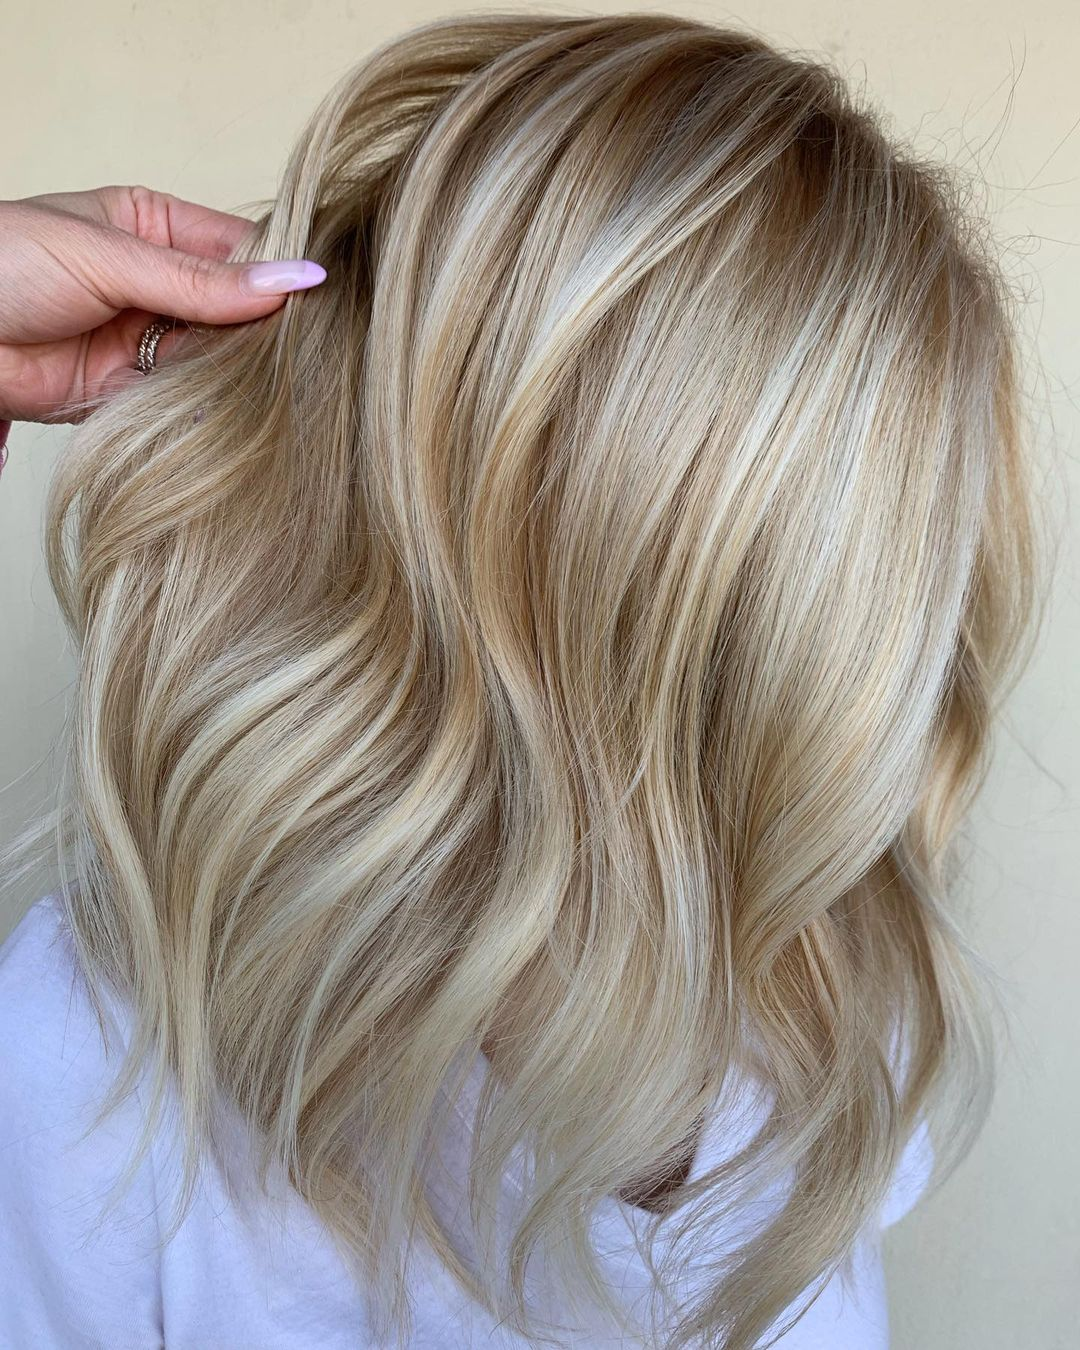 Warm and Cool Shades of Blonde